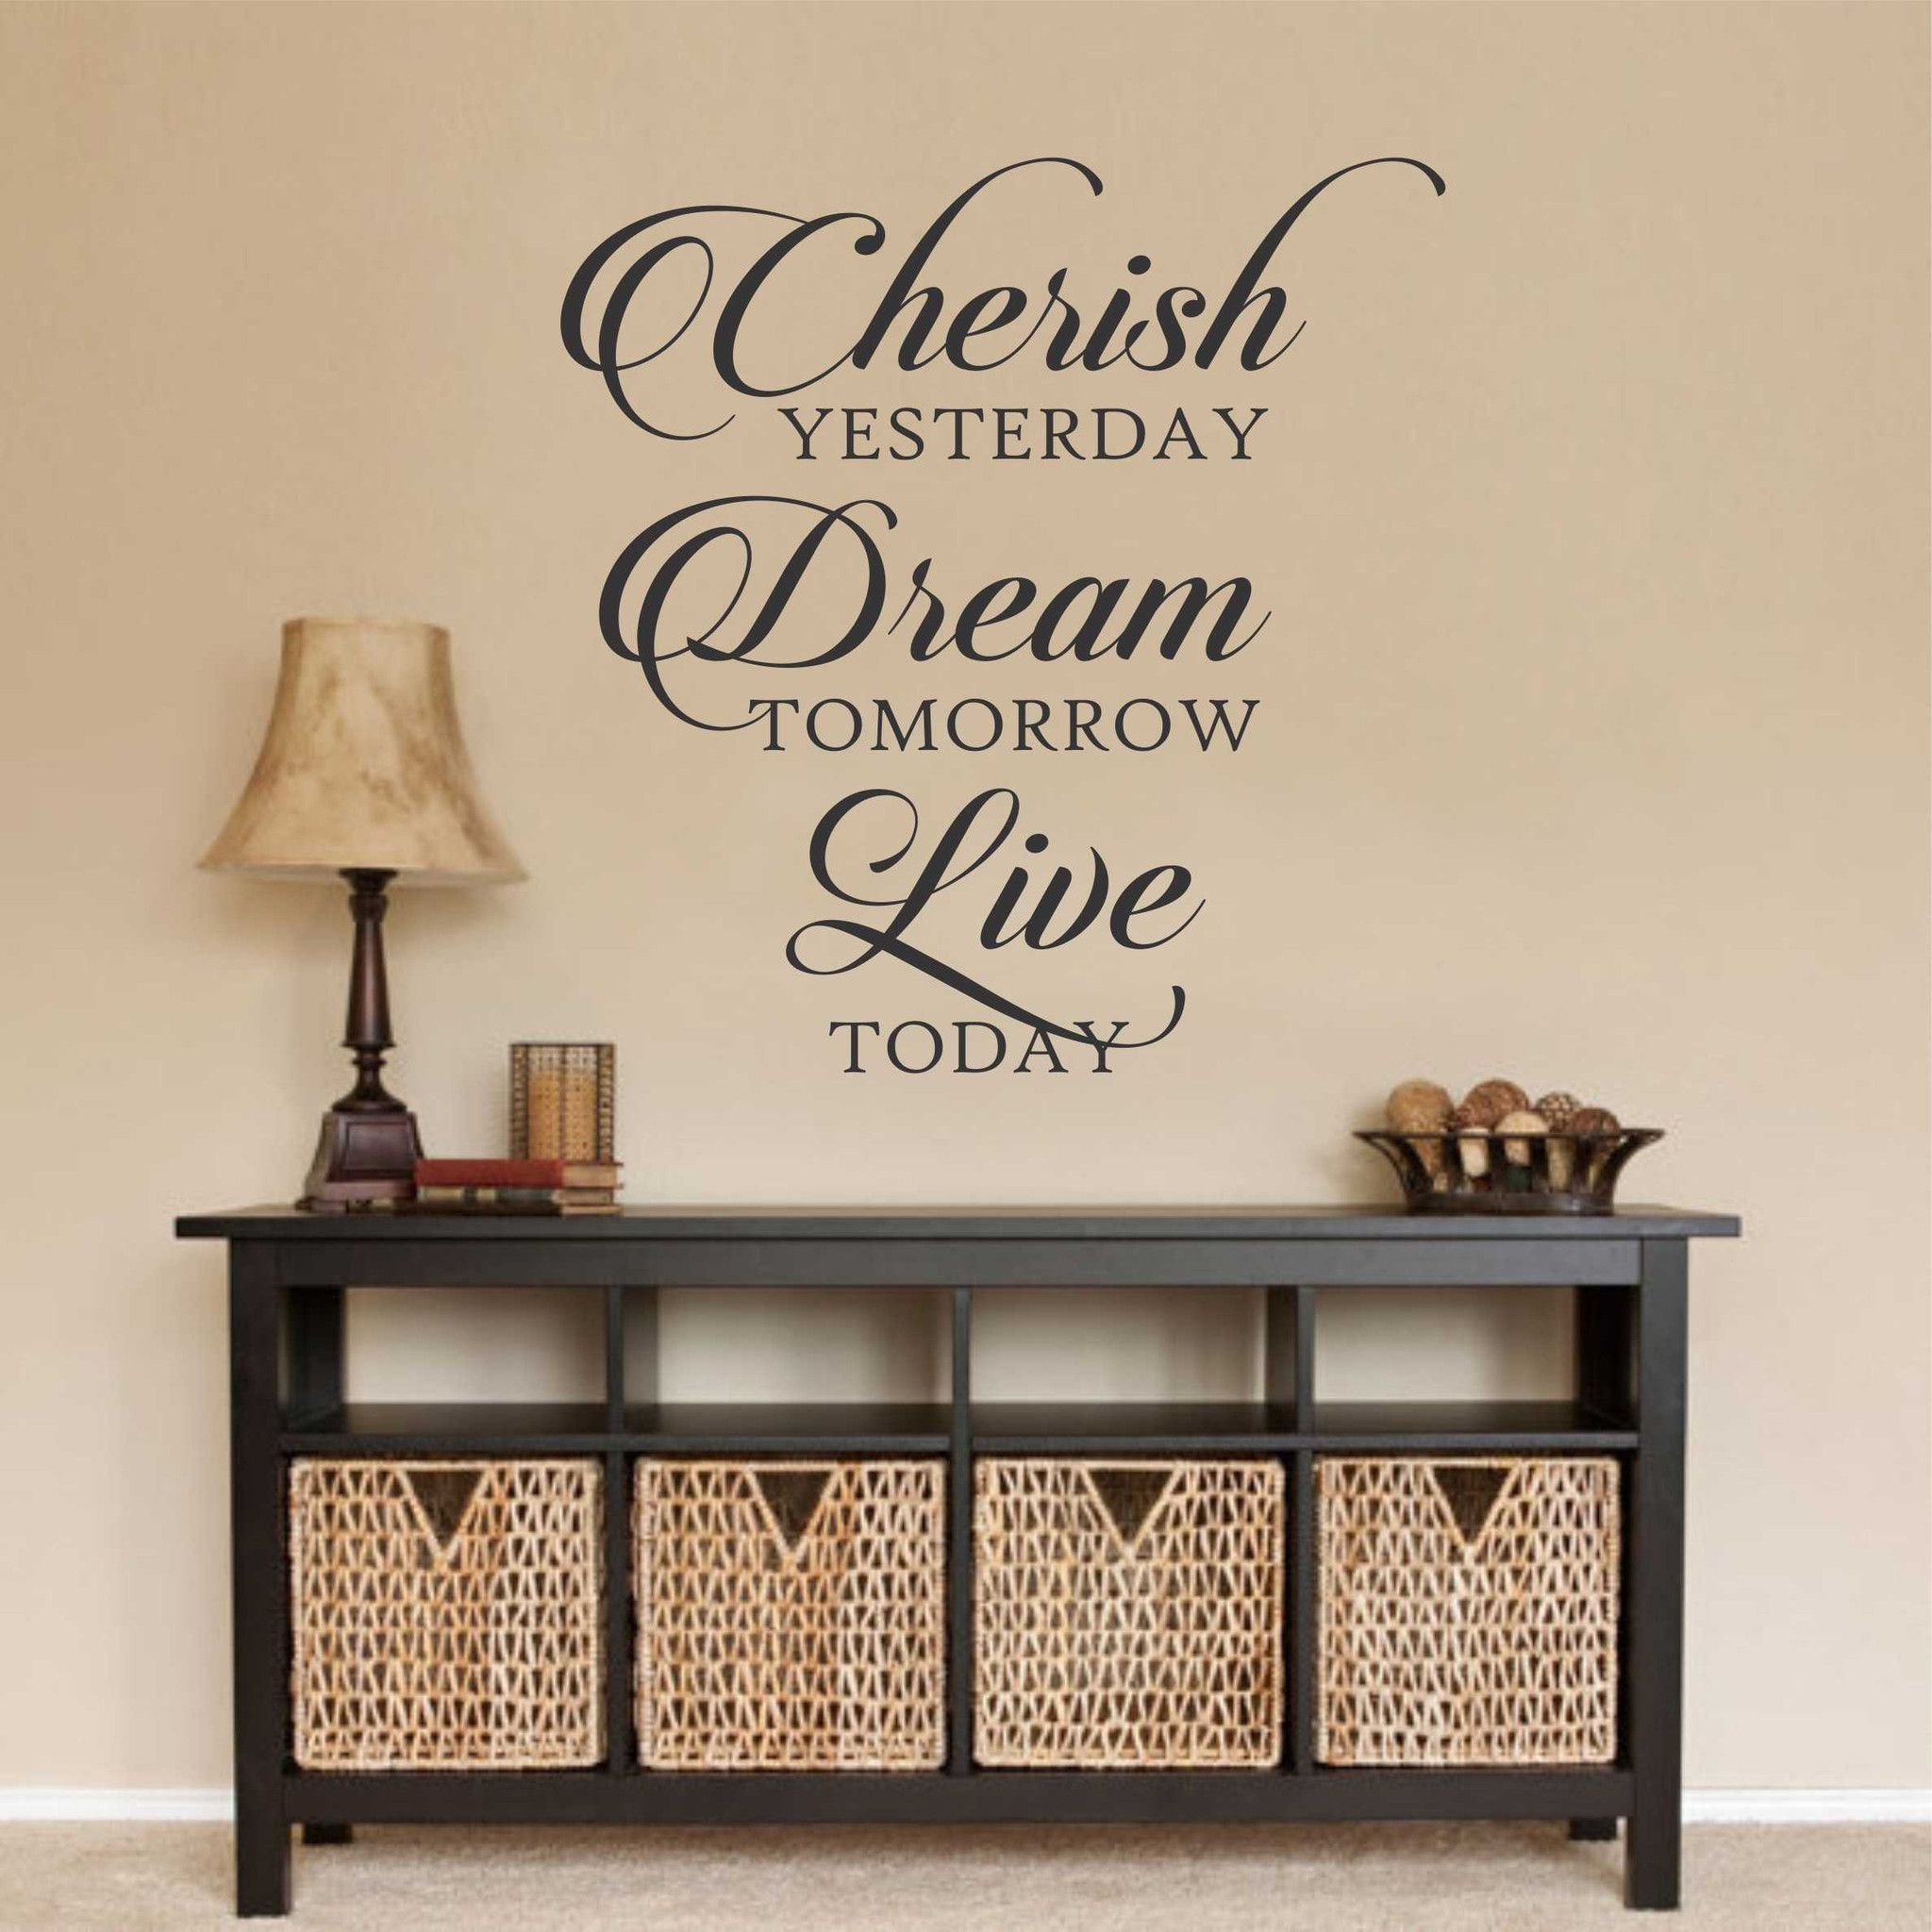 Cherish Dream Live Today Decal Vinyl Wall Lettering